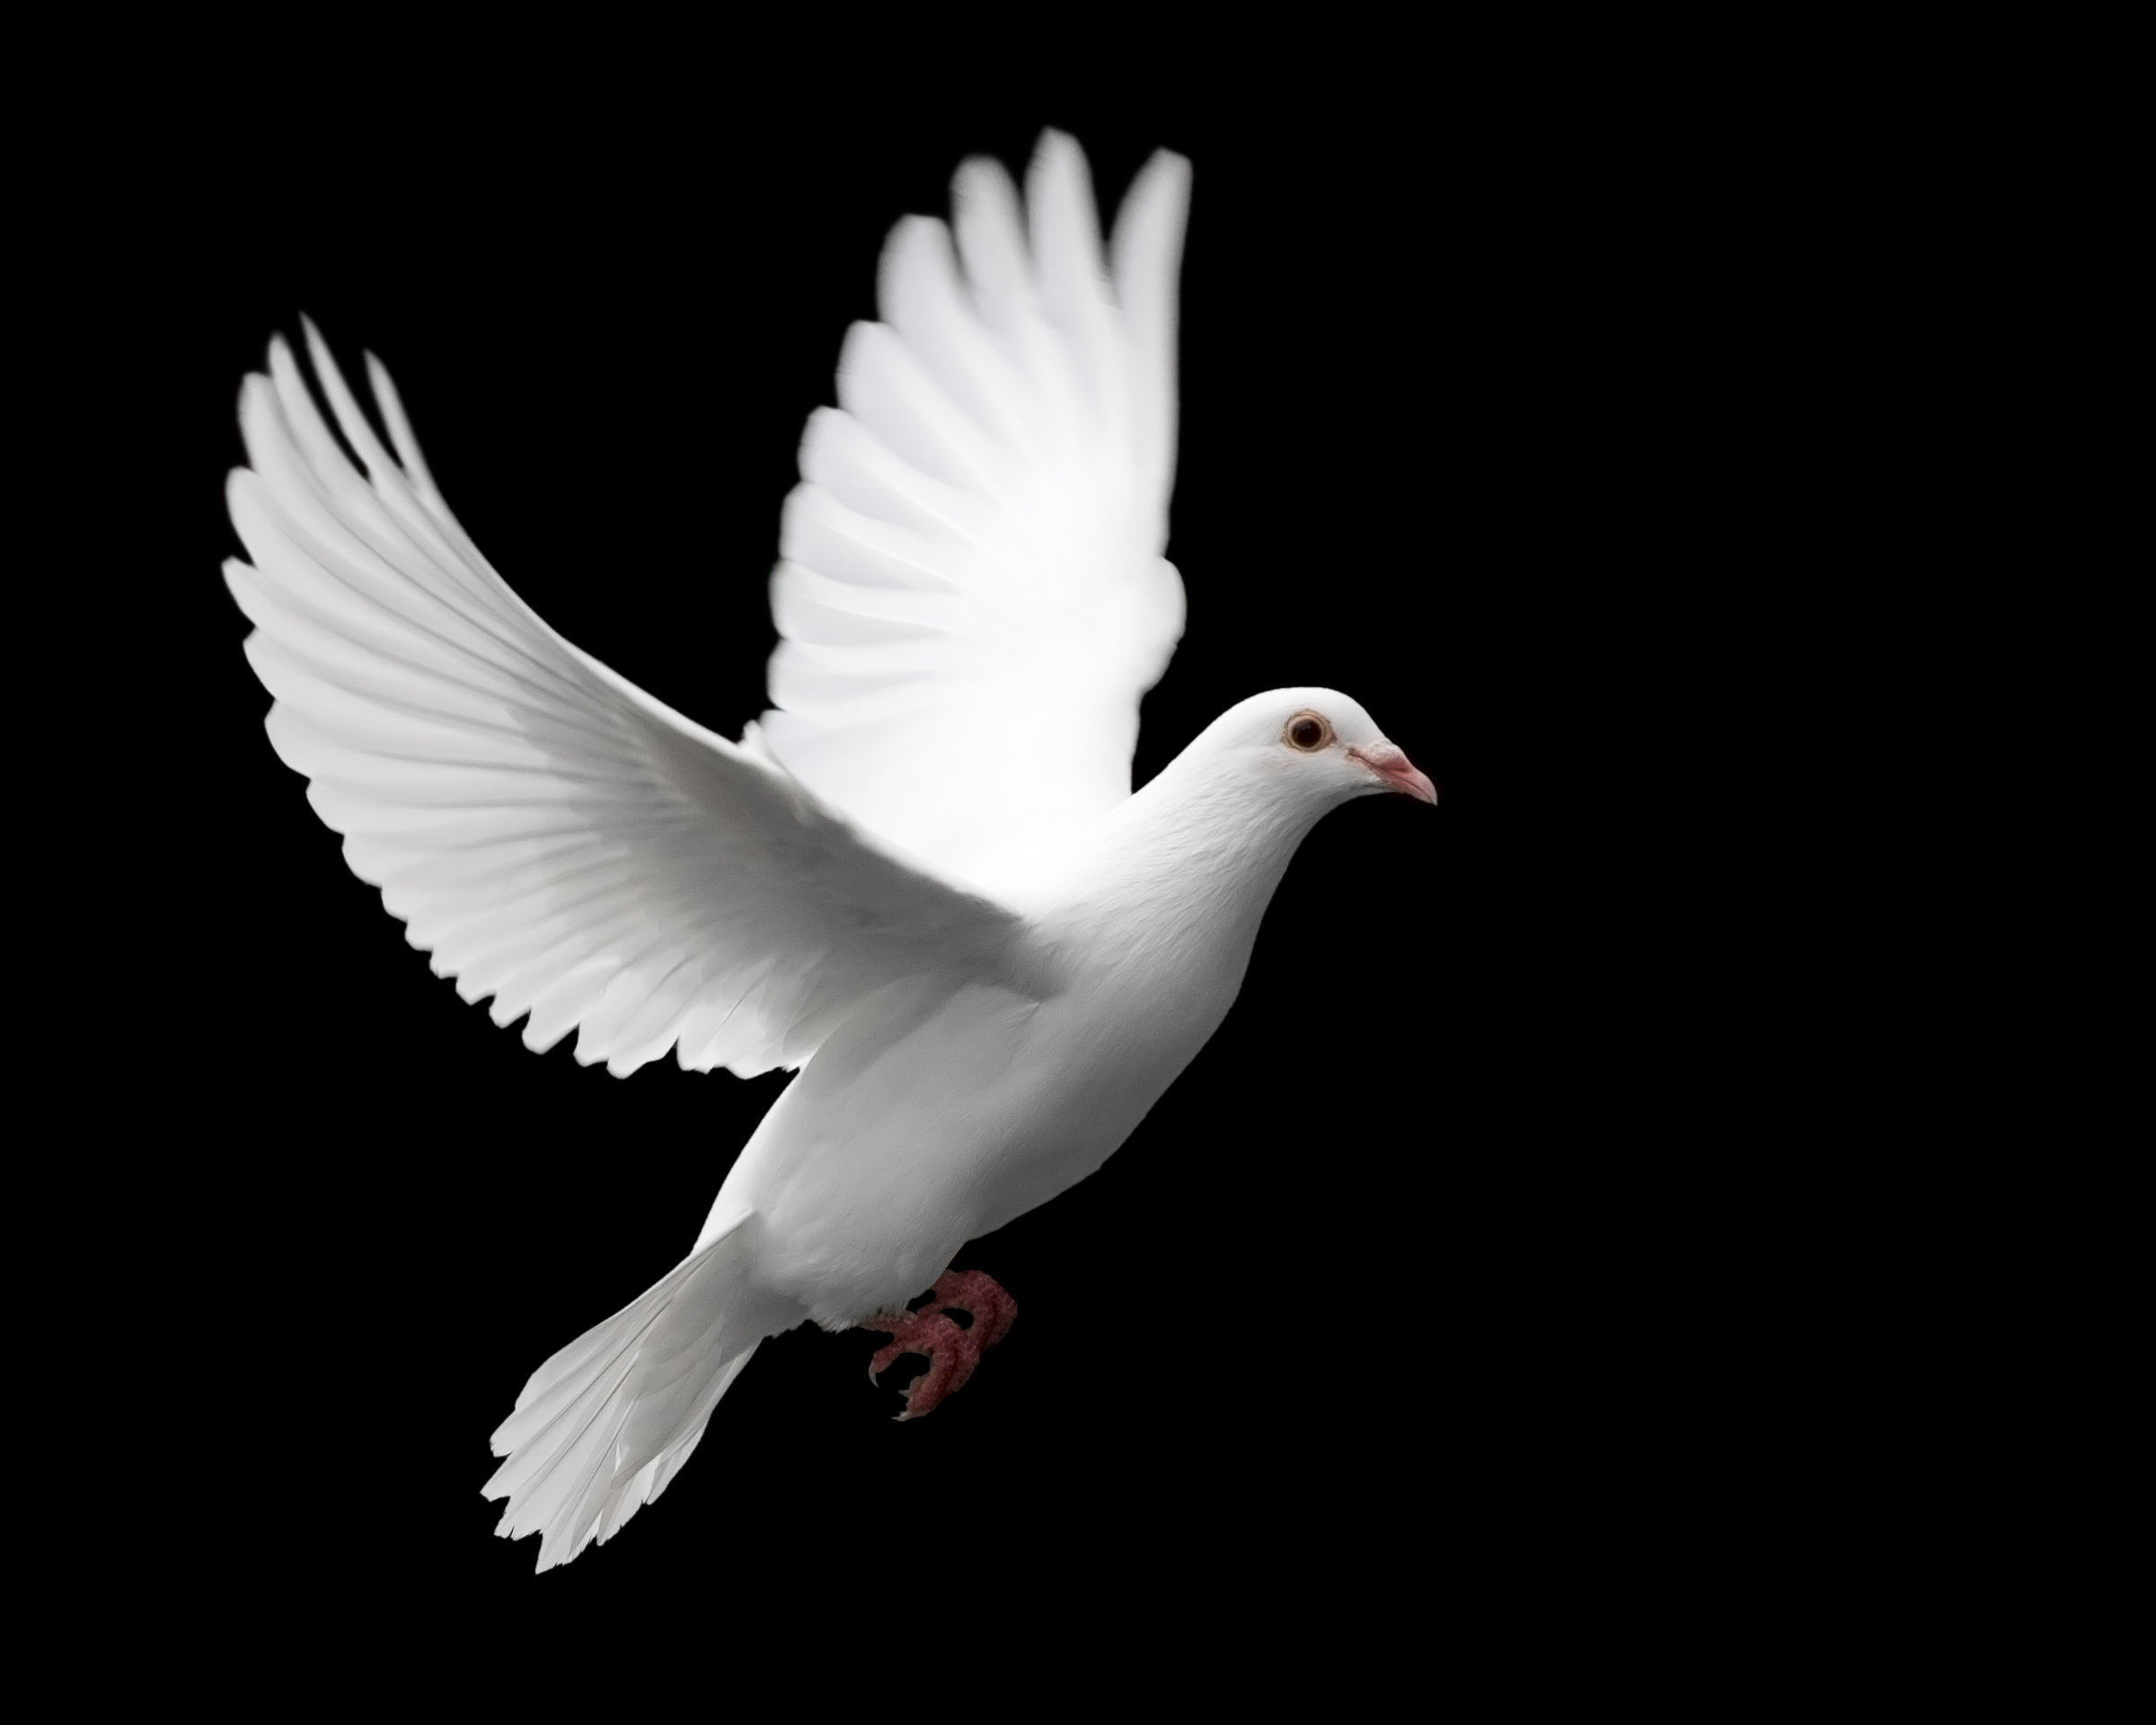 White Dove svg #11, Download drawings